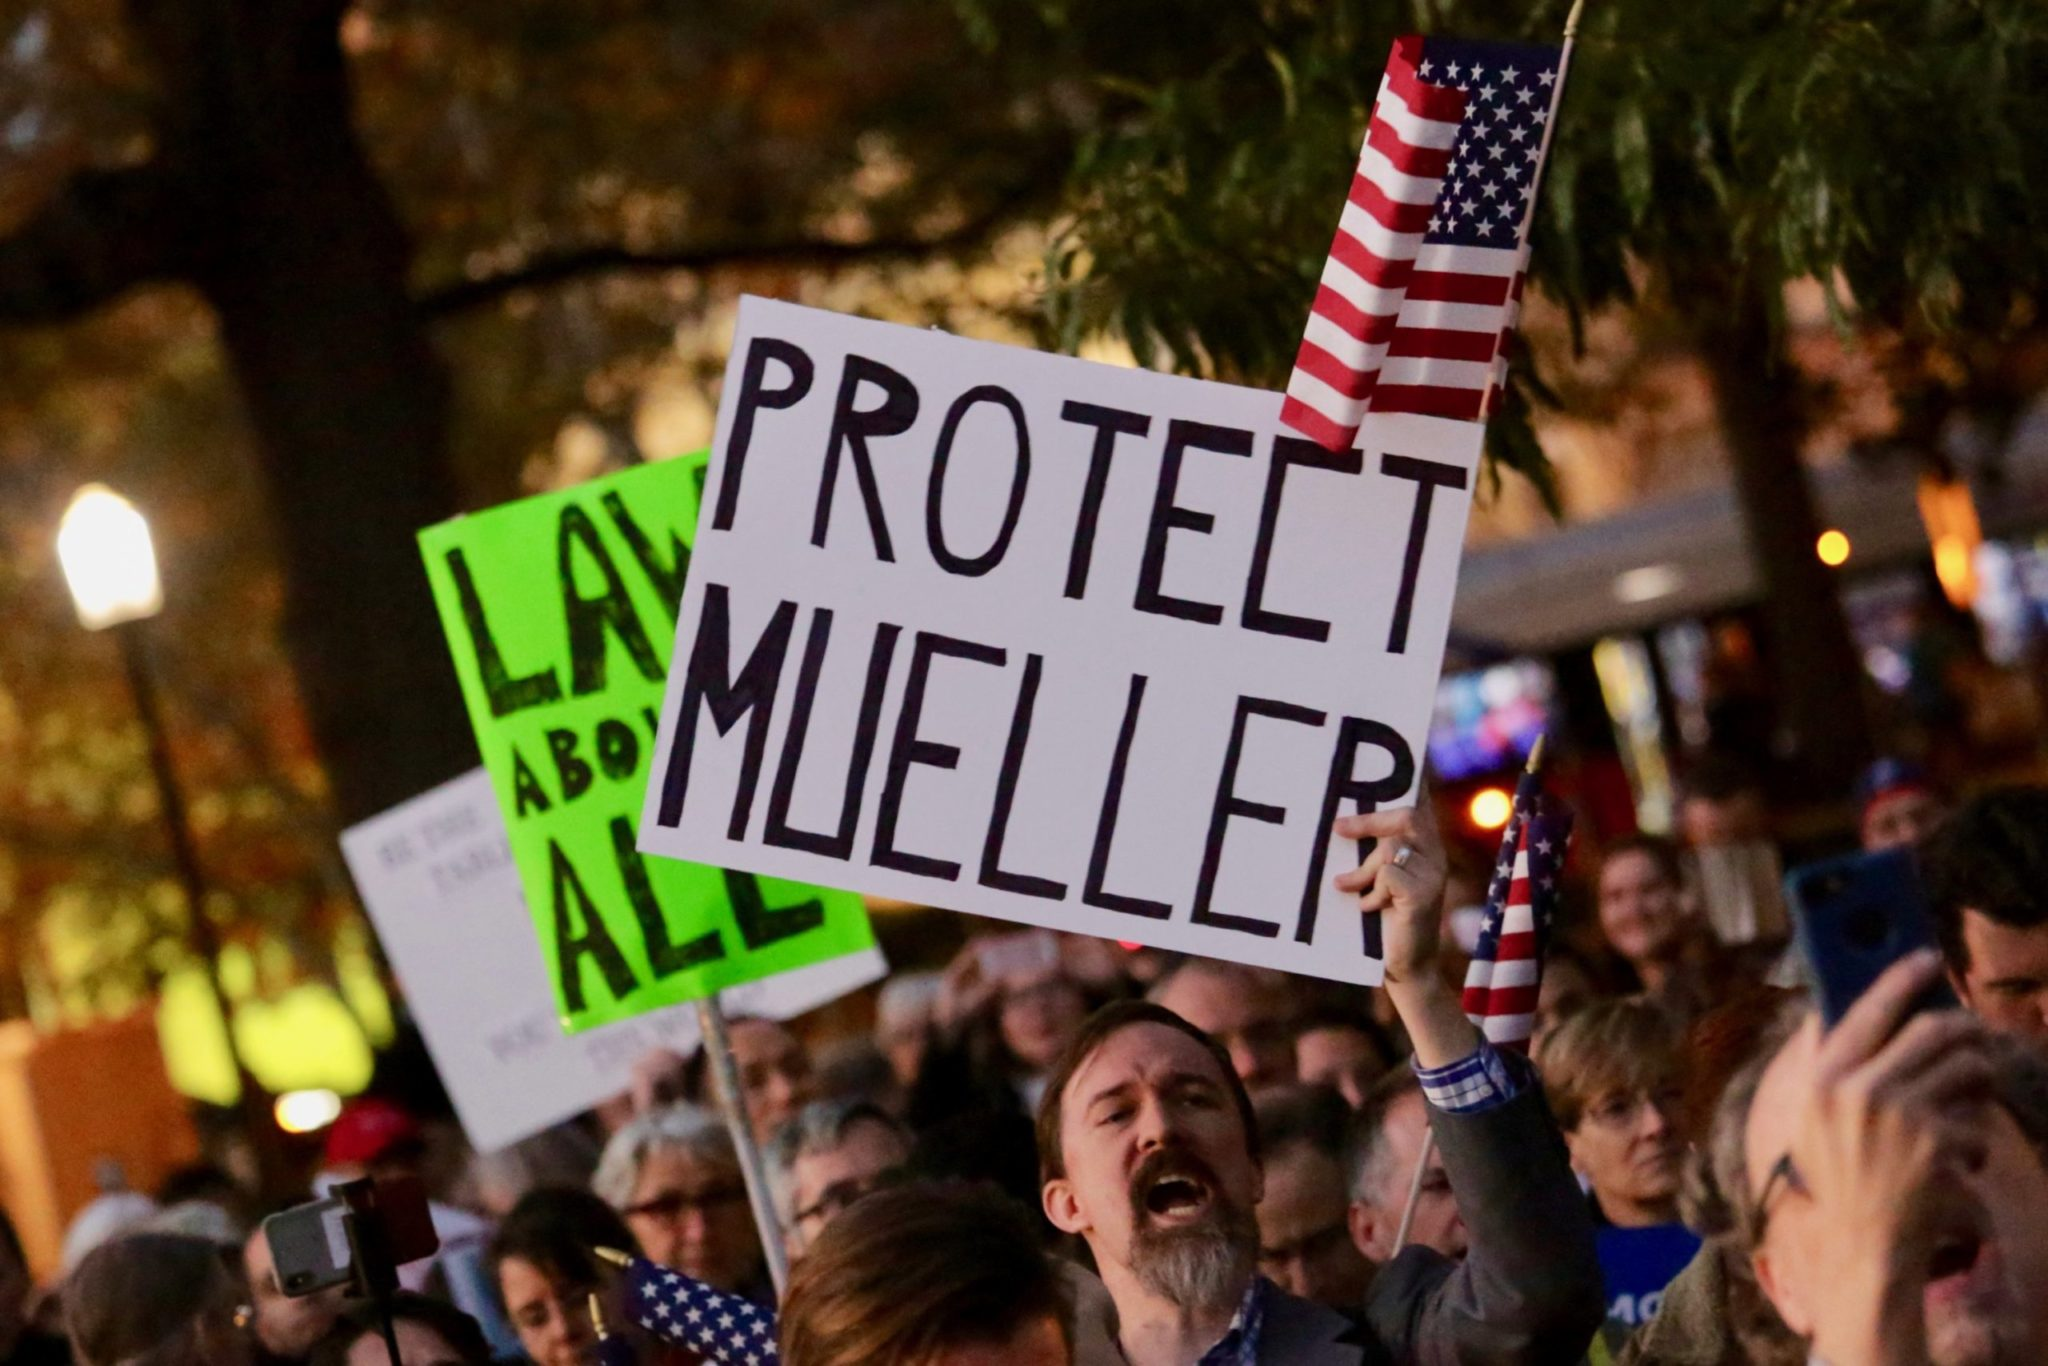 PHOTOS: Hundreds Gather in DC for a Pro-Mueller Demonstration